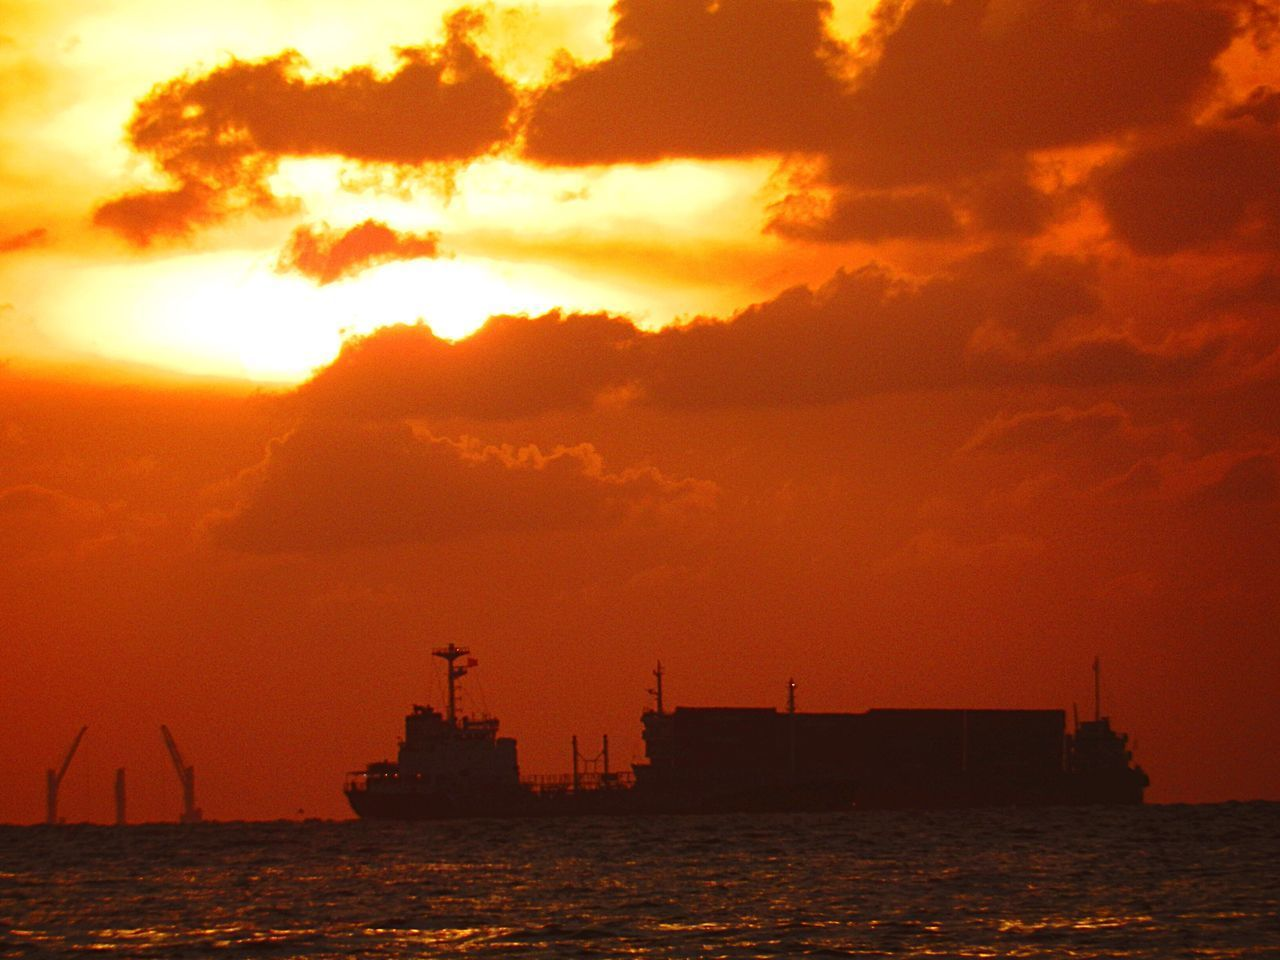 sunset, sea, orange color, nautical vessel, silhouette, sky, transportation, water, sun, waterfront, cloud - sky, freight transportation, mode of transport, industry, commercial dock, harbor, outdoors, nature, shipping, no people, crane - construction machinery, beauty in nature, scenics, travel destinations, building exterior, architecture, offshore platform, day, oil pump